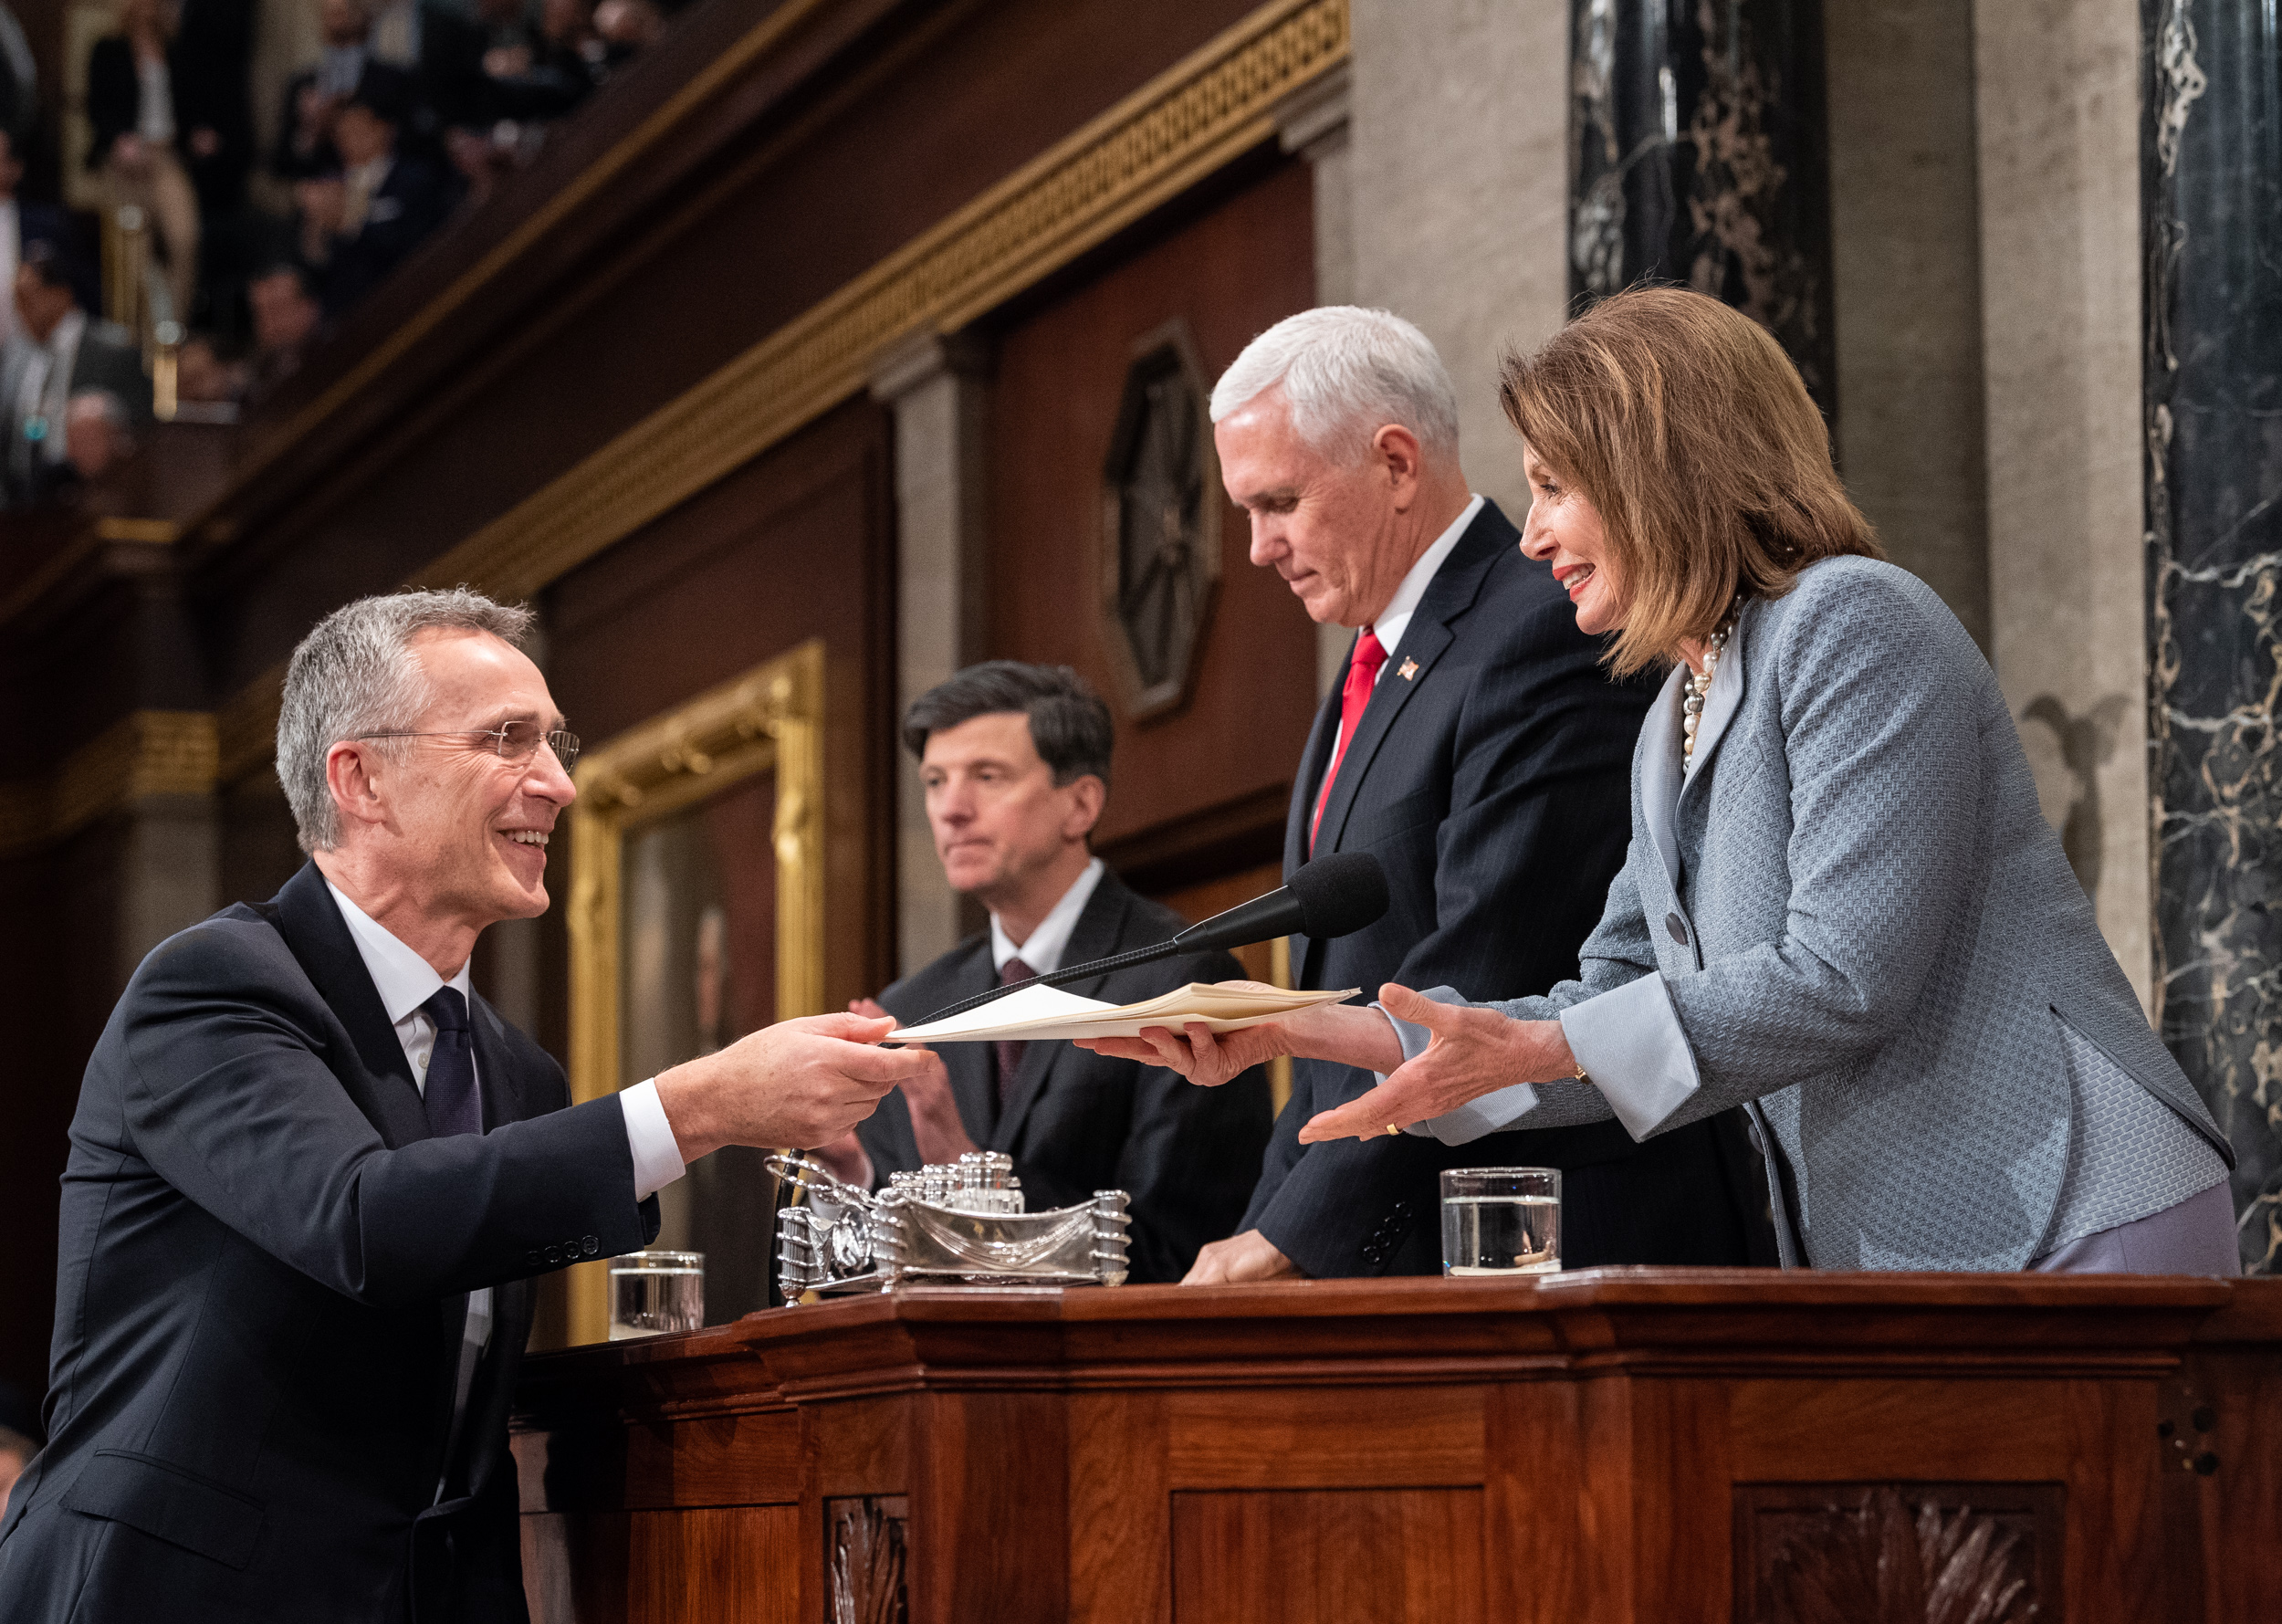 NATO Secretary General Jens Stoltenberg greets Nancy Pelosi and Mike Pence.